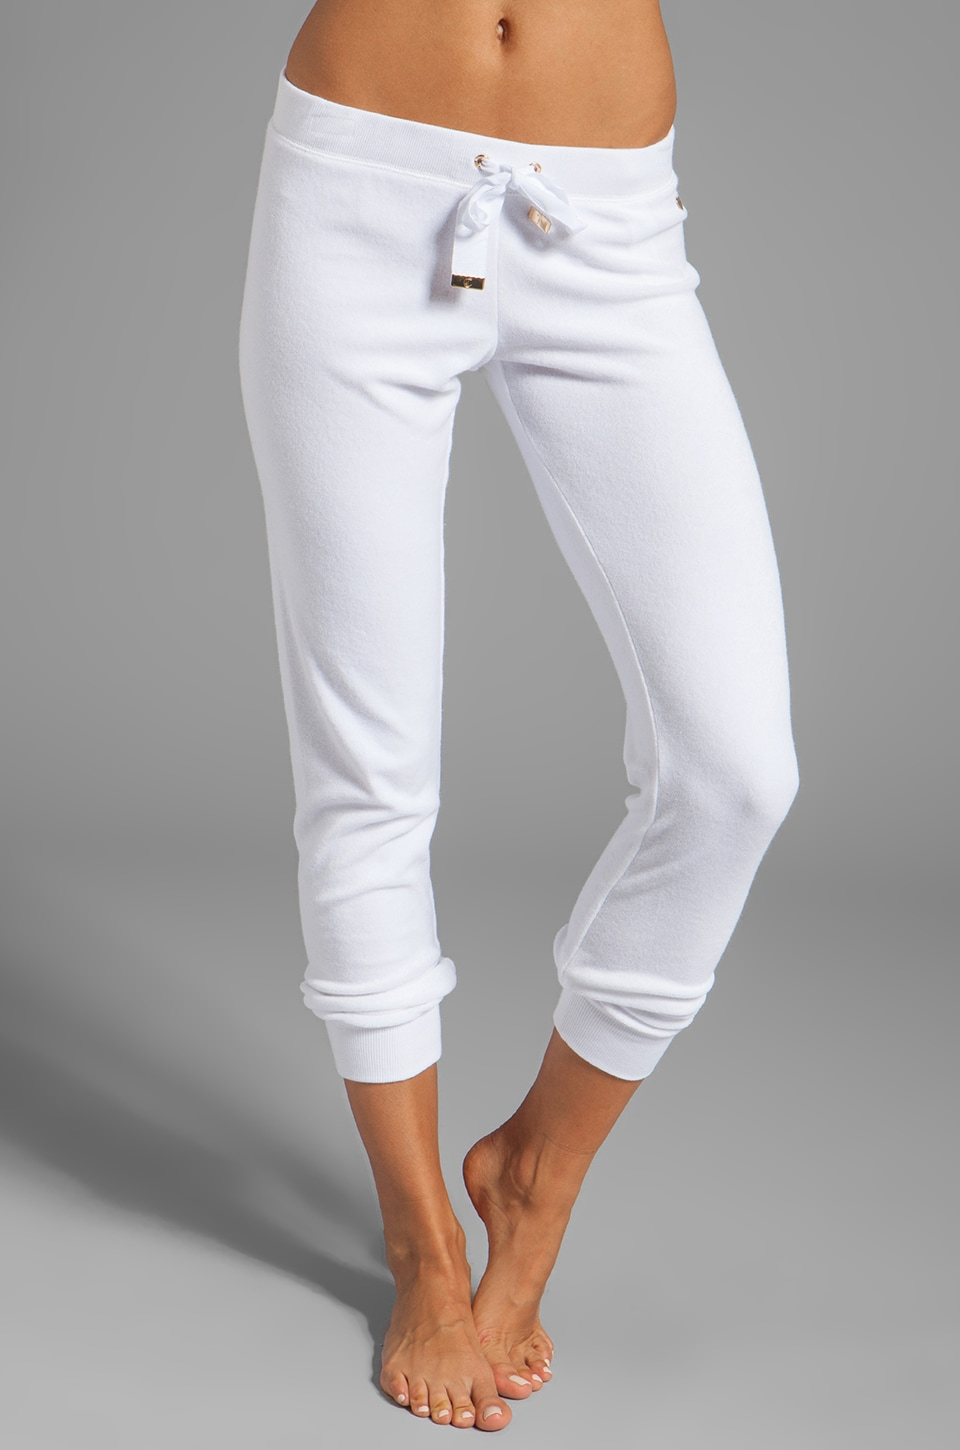 Juicy Couture Cozy Terry Pant in White